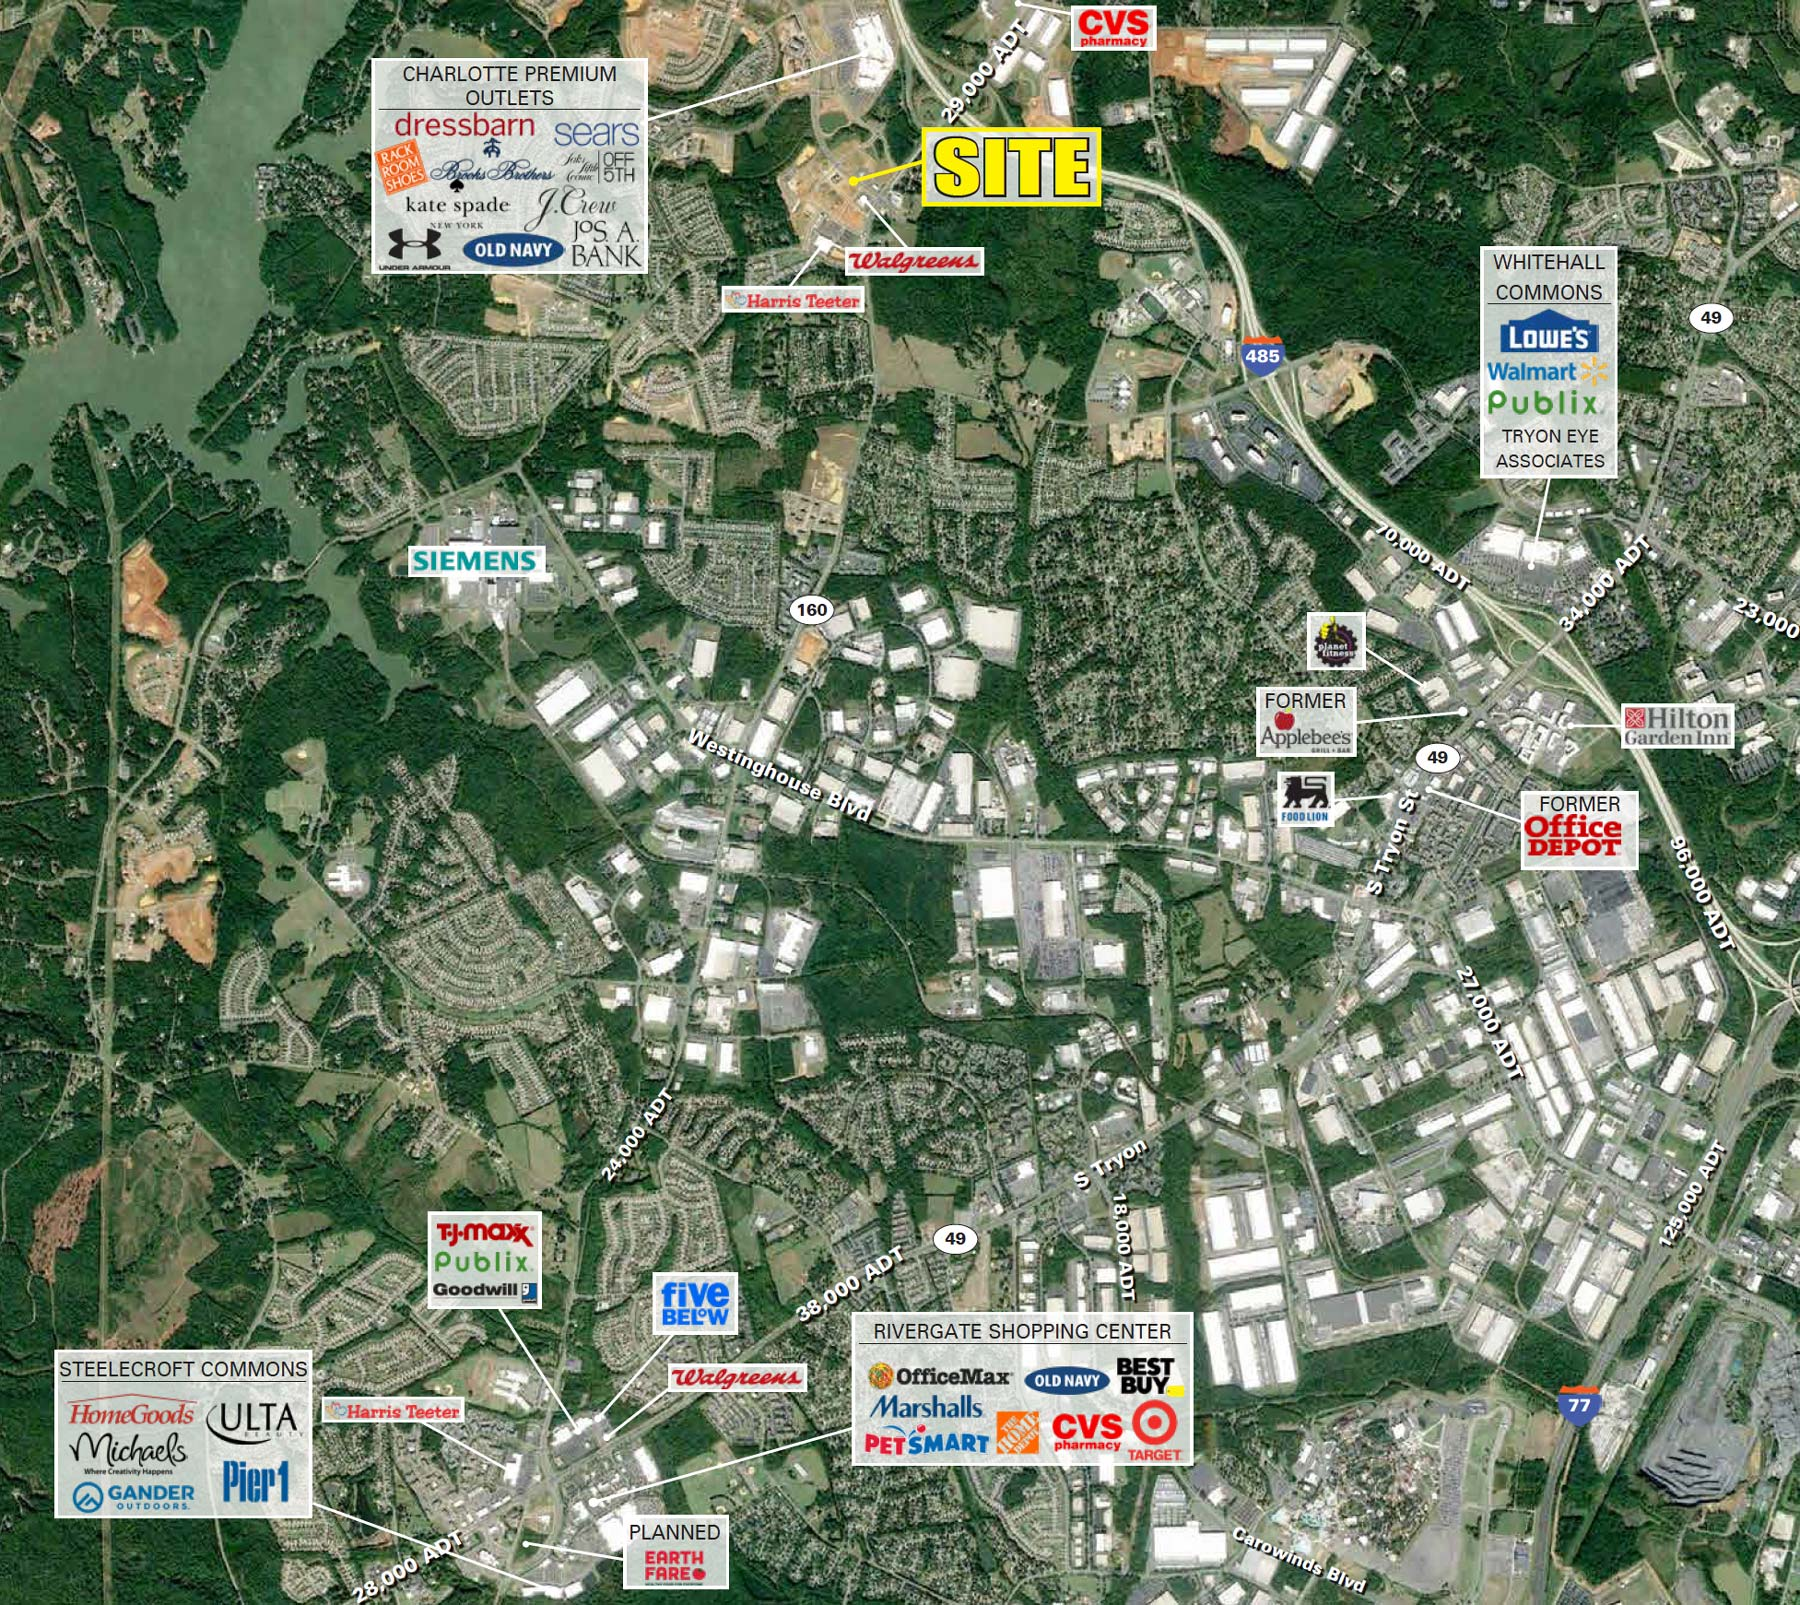 Charlotte Real Estate Development